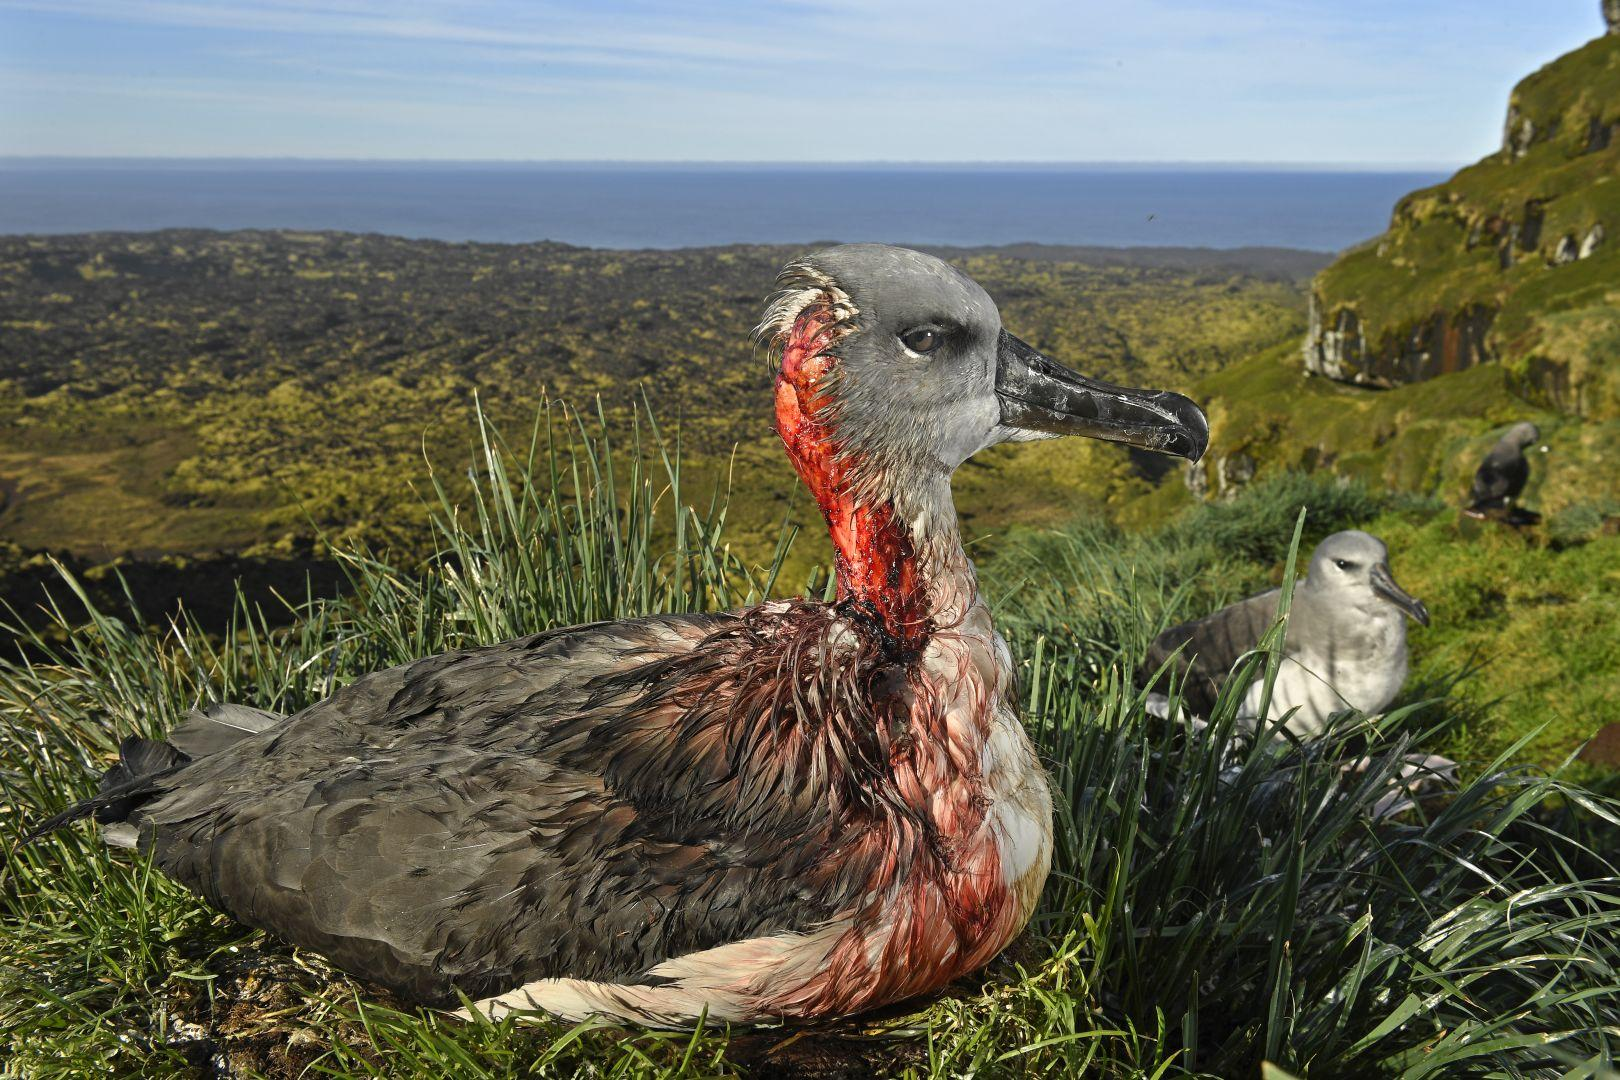 This juvenile gray-headed albatross has been partially eaten by mice. This image evokes feelings of negative awe - is it more likely than the image above to generate support for conservation efforts? Image by  Thomas P. Peschak